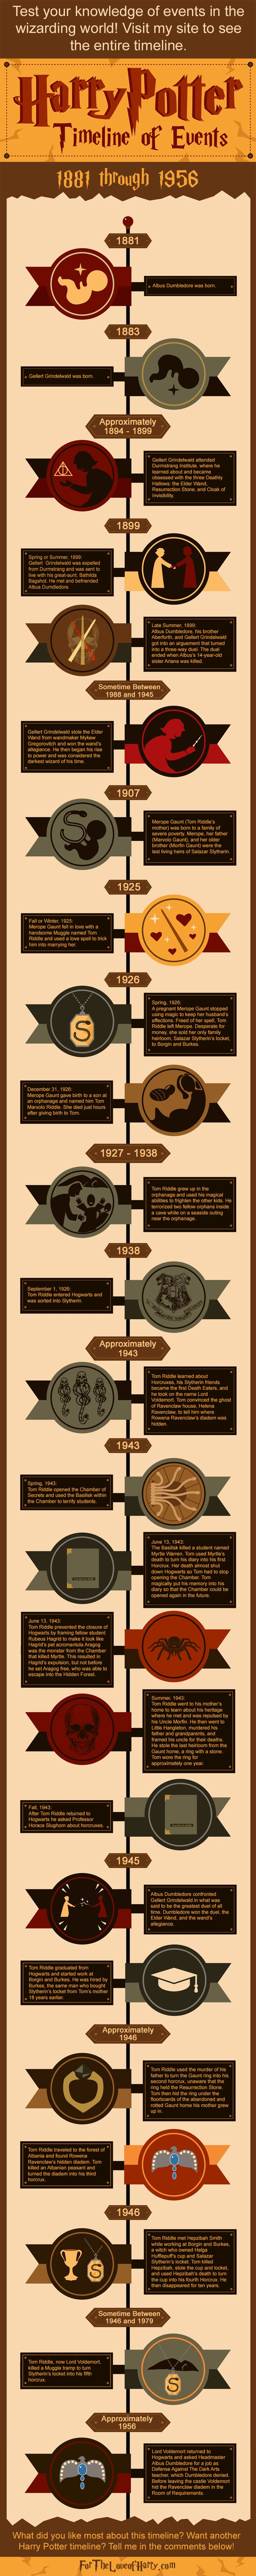 Infographic timeline of events that happened in the Harry Potter universe from 1881 through1956 @hahalucylol